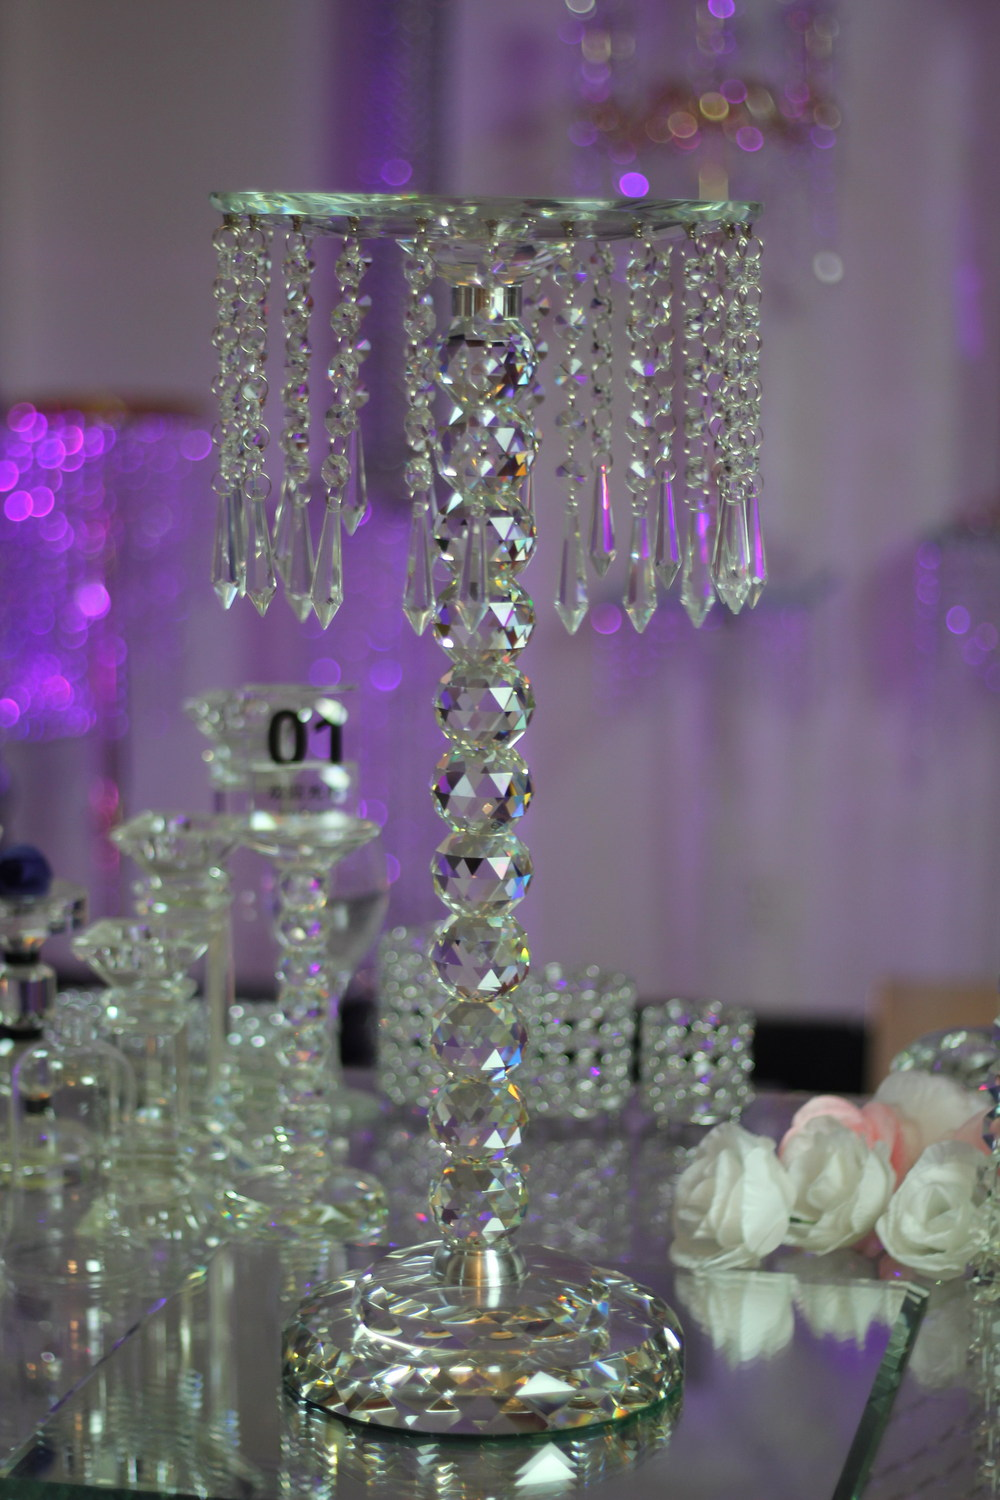 2362inch artificial crystal flower or cake stand wedding table 2362inch artificial crystal flower or cake stand wedding table centerpieces event party supplies in party diy decorations from home garden on aloadofball Images